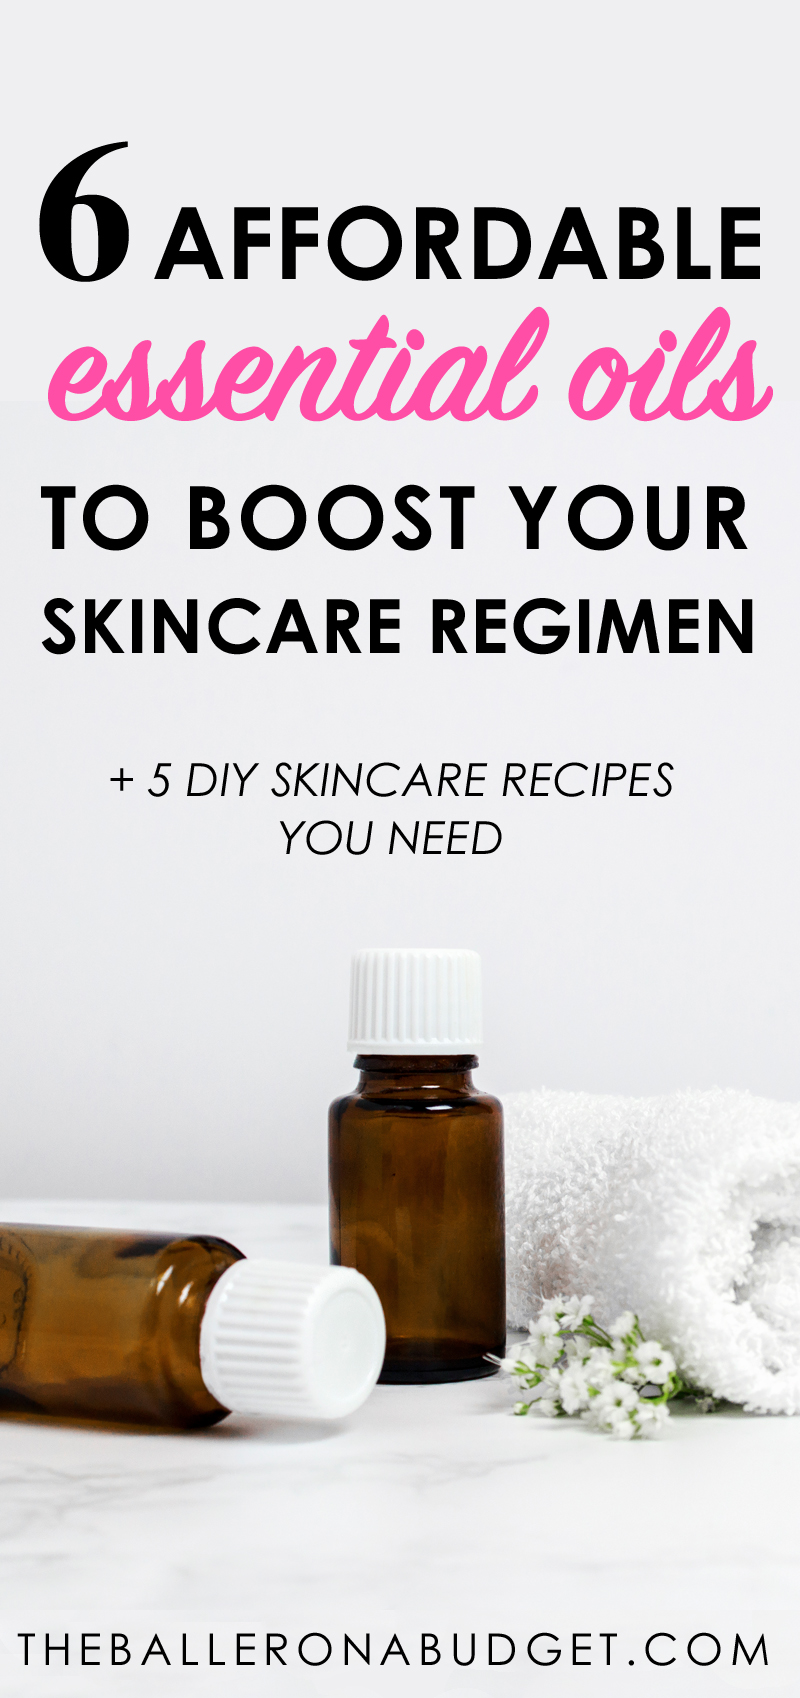 Essential oils can be more effective for skincare than the products in your medicine cabinet. Here are some affordable oils you need to add to your regimen. - www.theballeronabudget.com